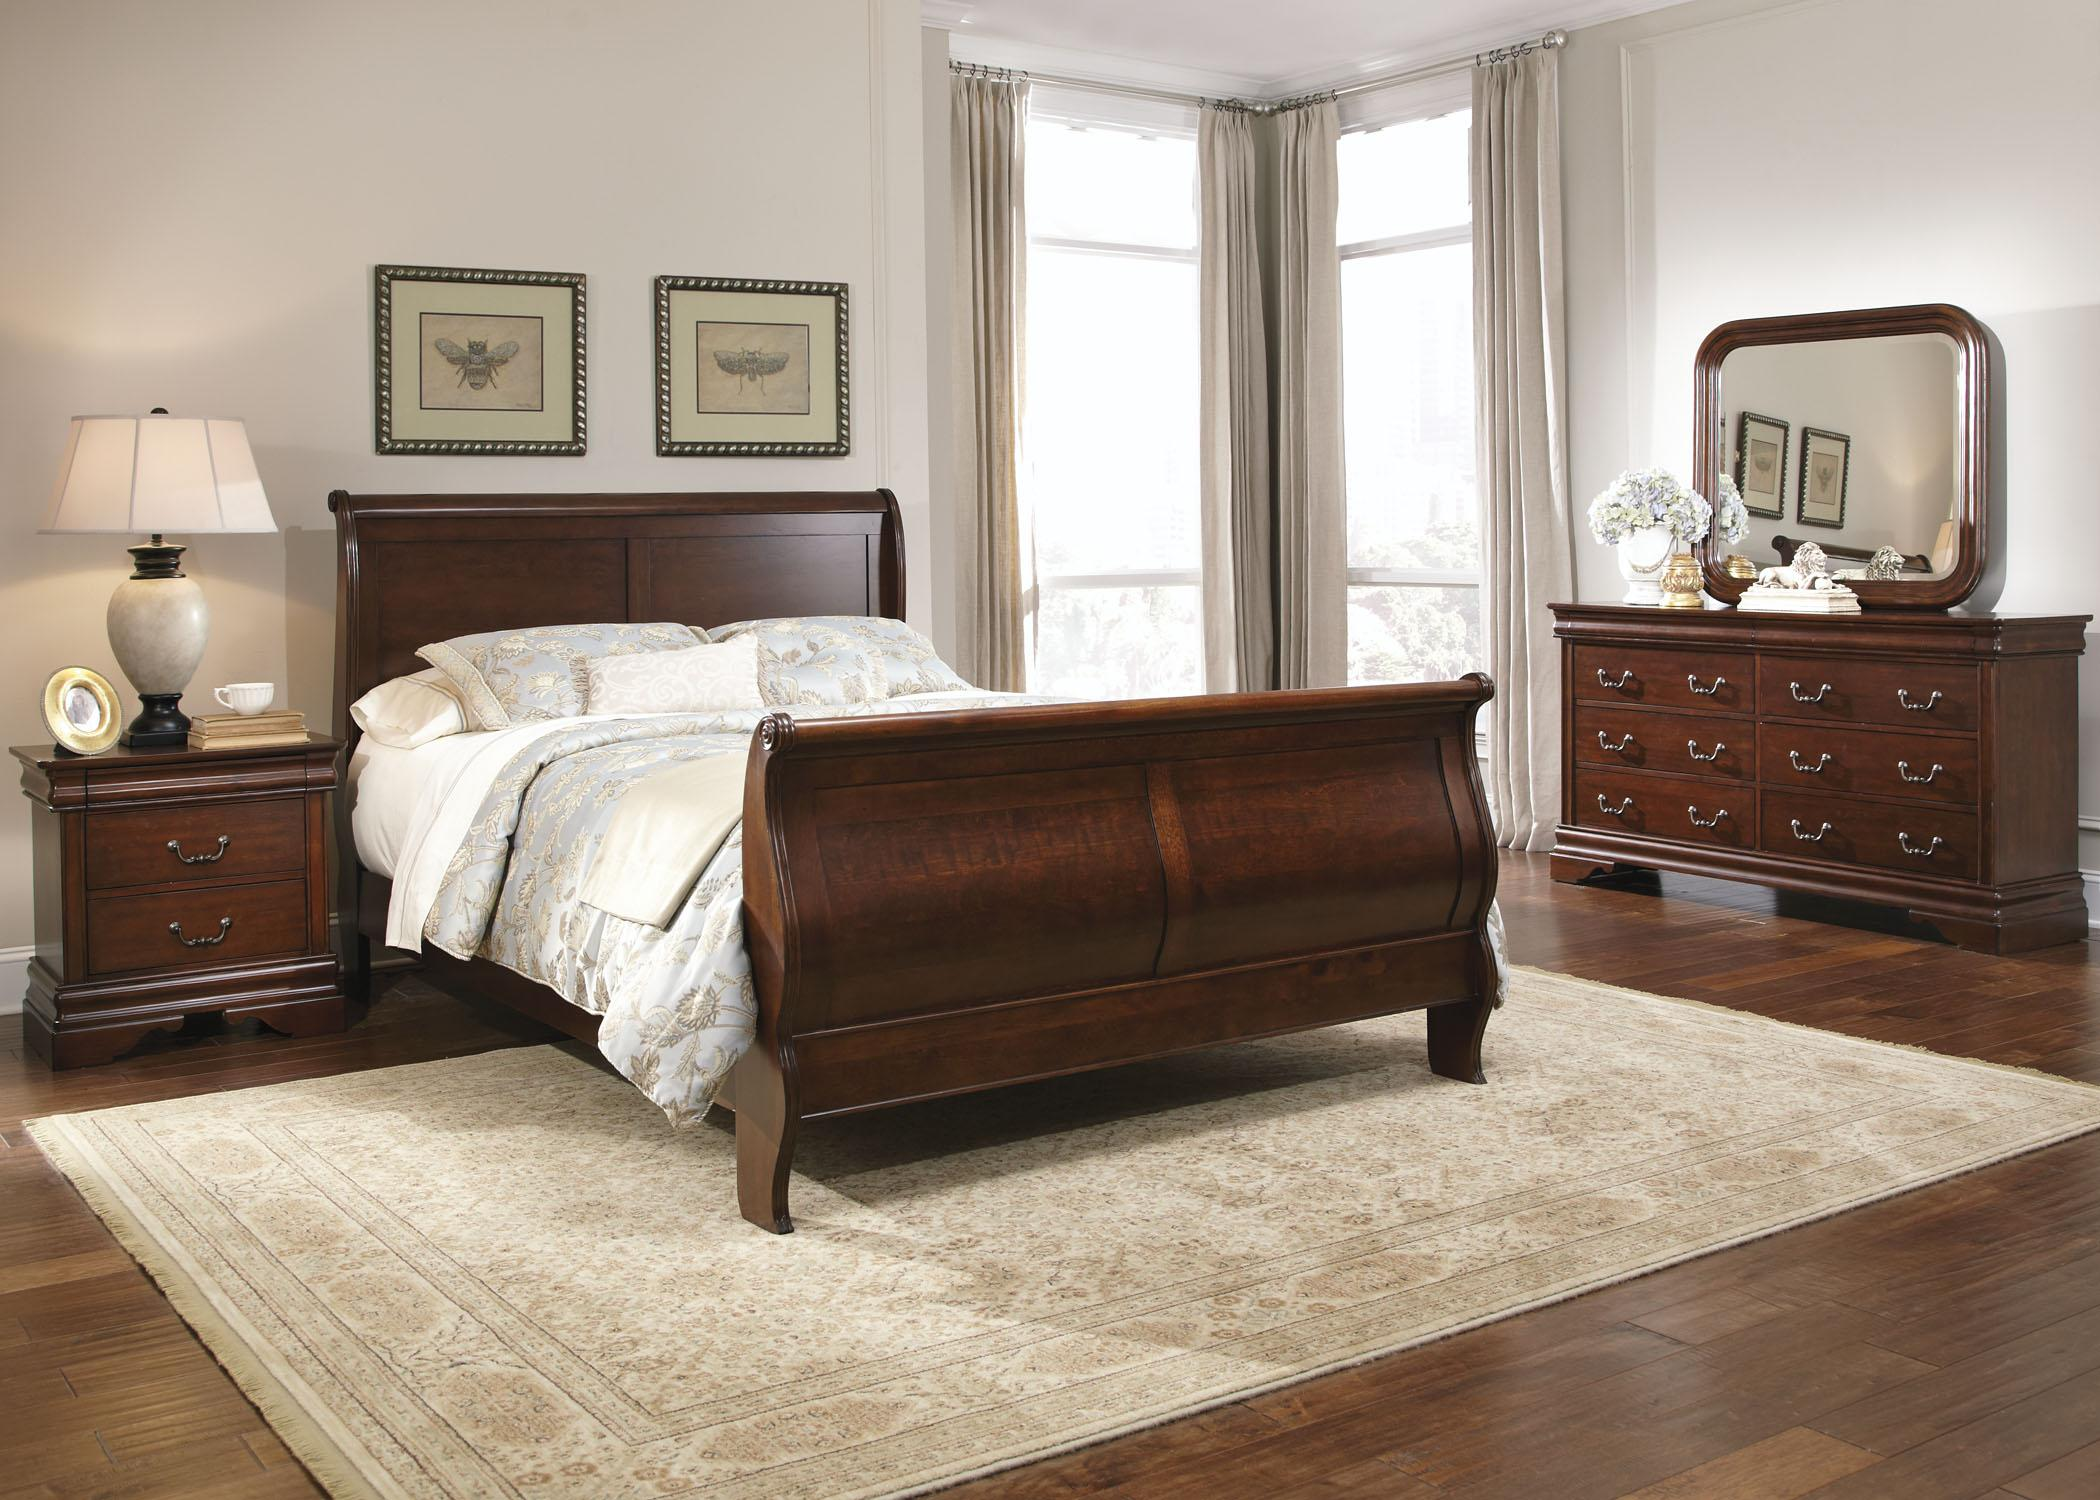 Carriage Court Queen Sleigh Bed, Dresser & Mirror, N/S by Liberty Furniture at Standard Furniture